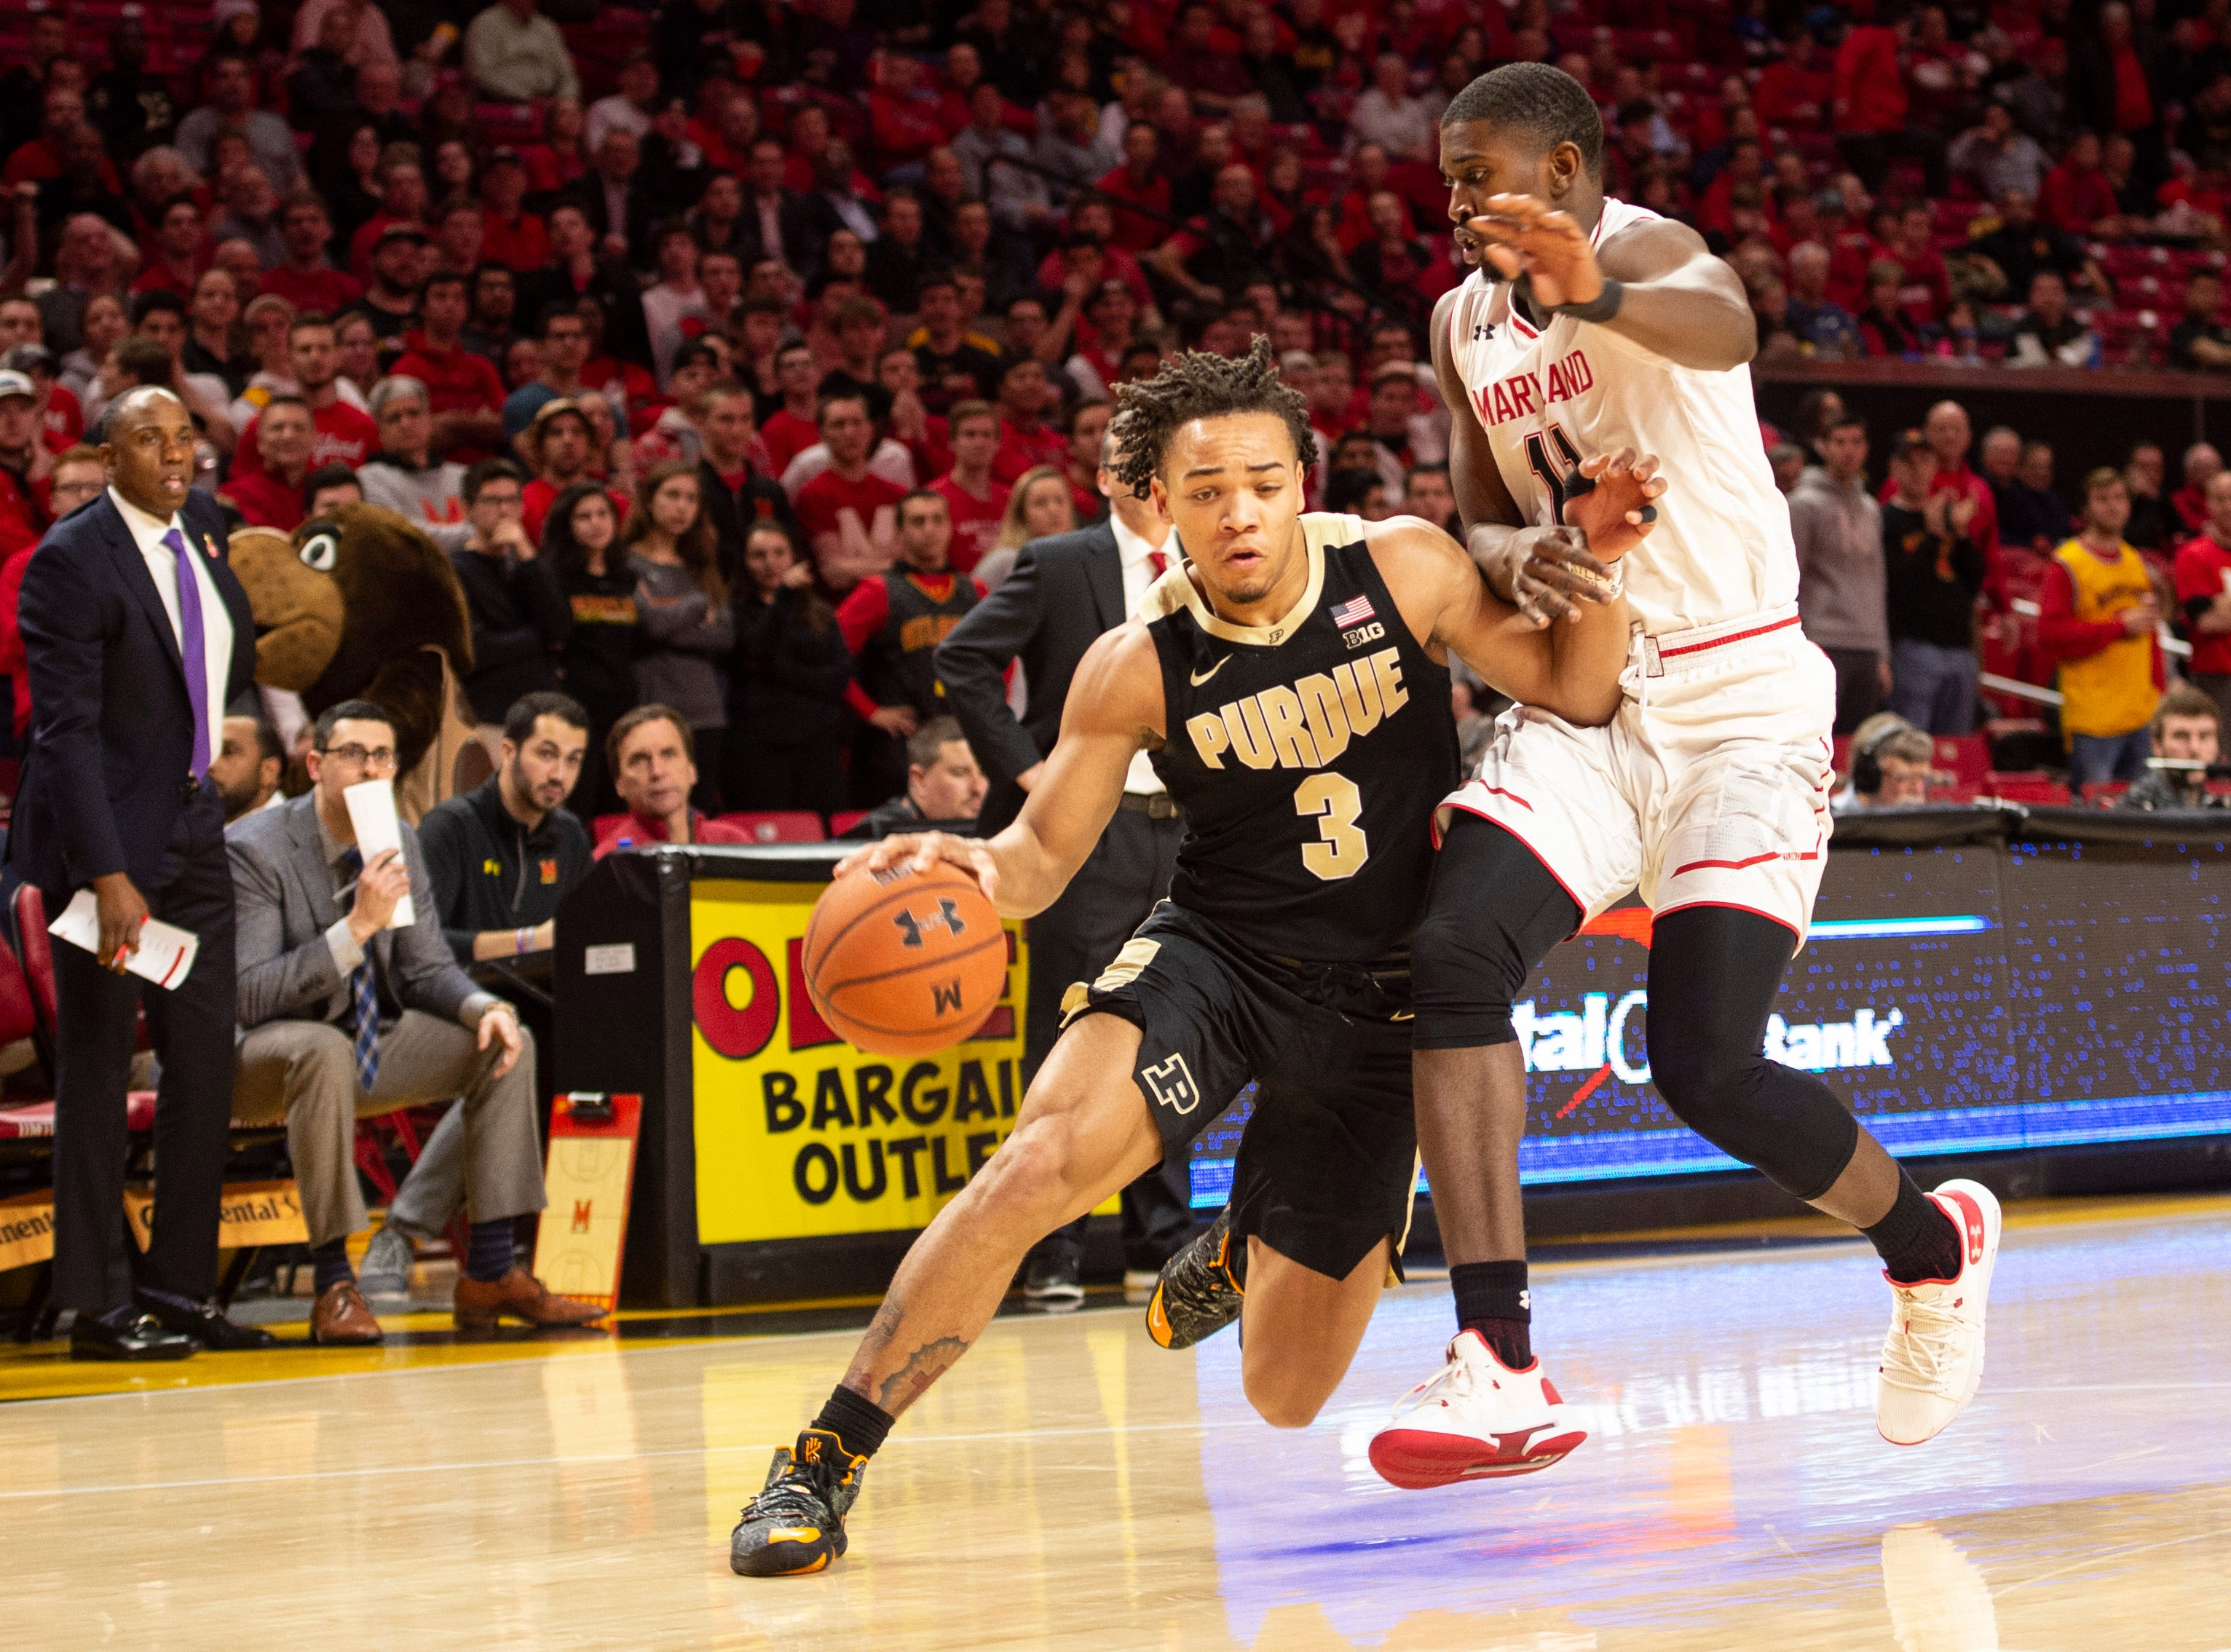 Feb 12, 2019; College Park, MD, USA; Purdue Boilermakers guard Carsen Edwards (3) makes a move to the basket as Maryland Terrapins guard Darryl Morsell (11) defends during the first half at XFINITY Center. Mandatory Credit: Tommy Gilligan-USA TODAY Sports